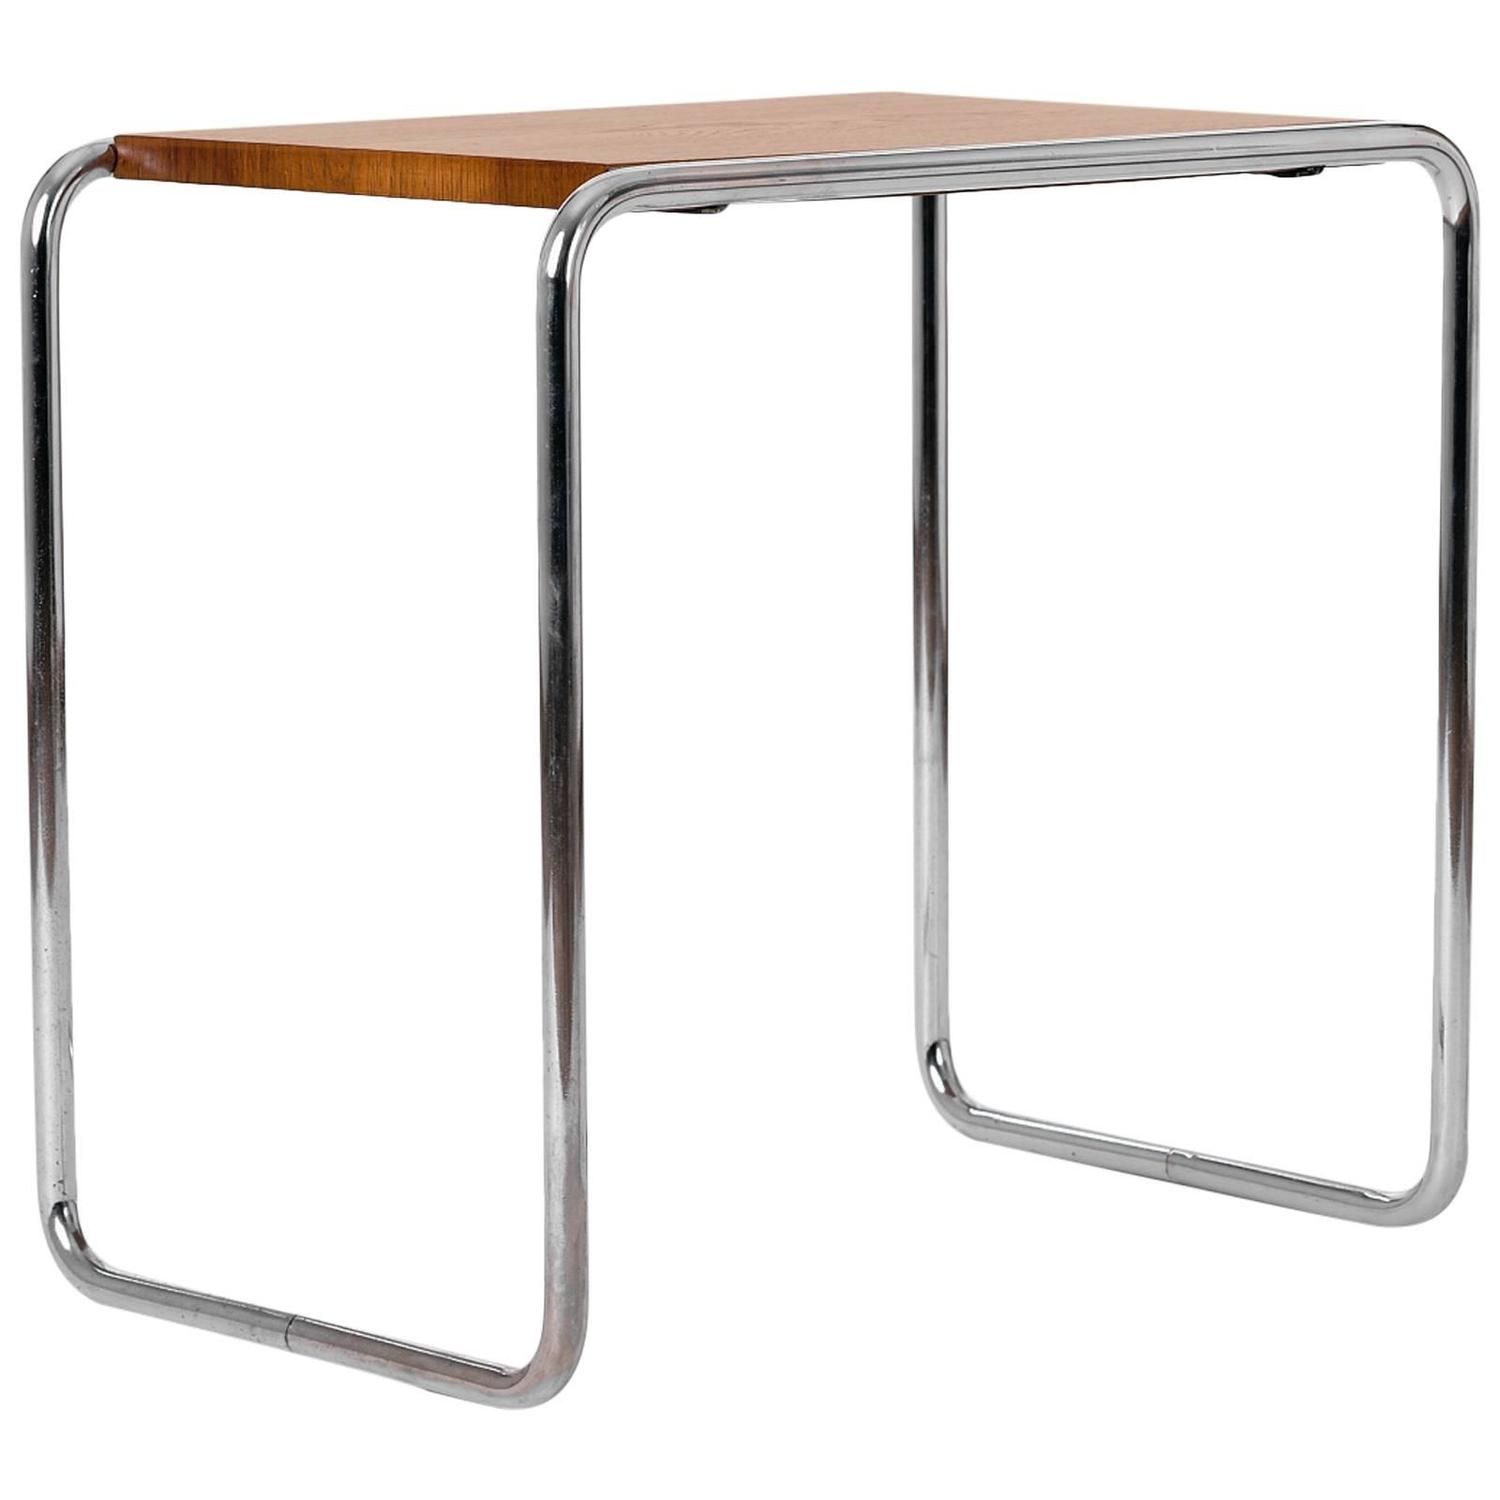 Tubular Steel Table B9 By Marcel Breuer For Thonet For Sale At 1stdibs